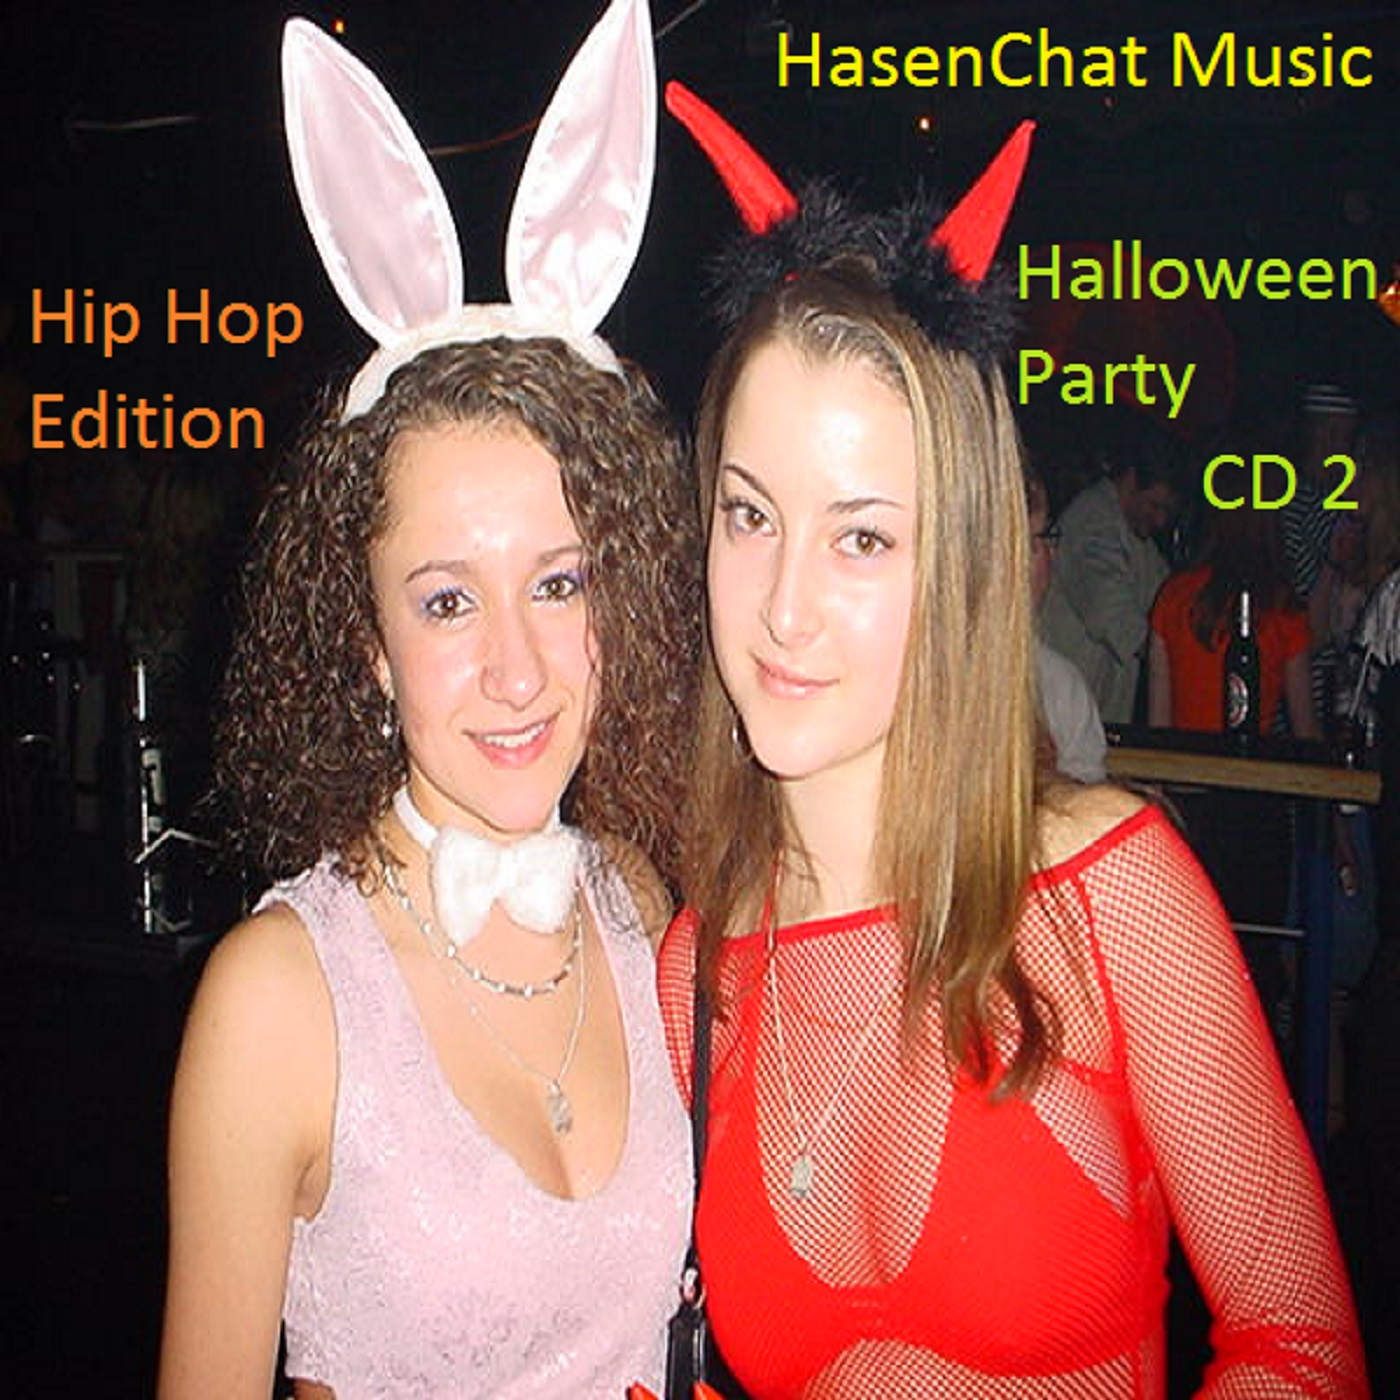 HasenChat Music - Halloween Party 1 - CD 2